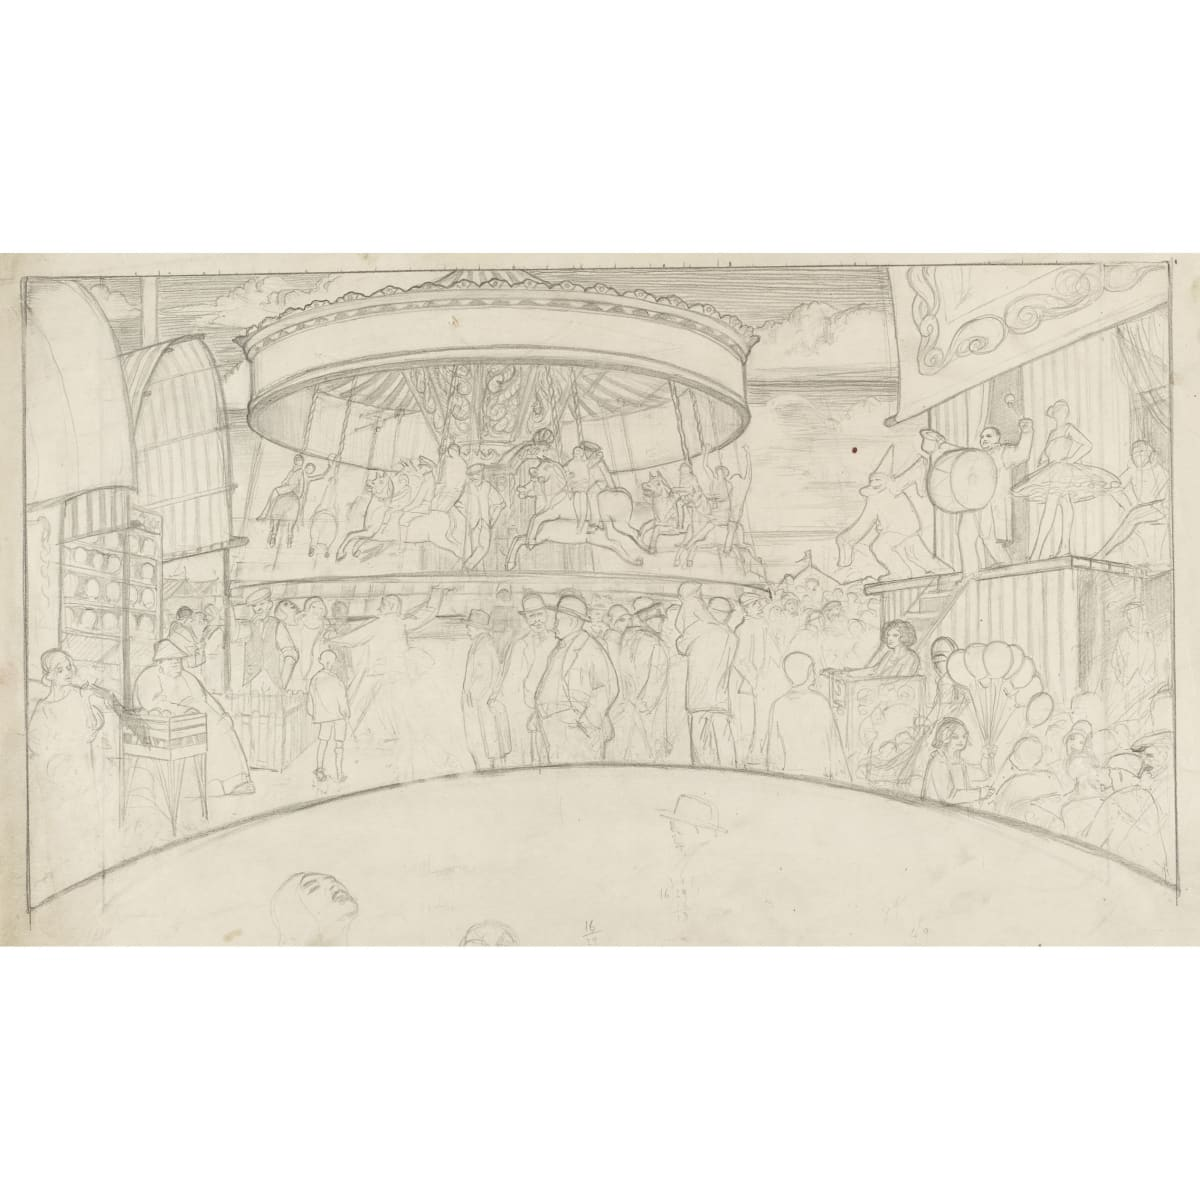 Sir William Oliphant Hutchison Bemax / The Fairground pencil 15 x 22 inches